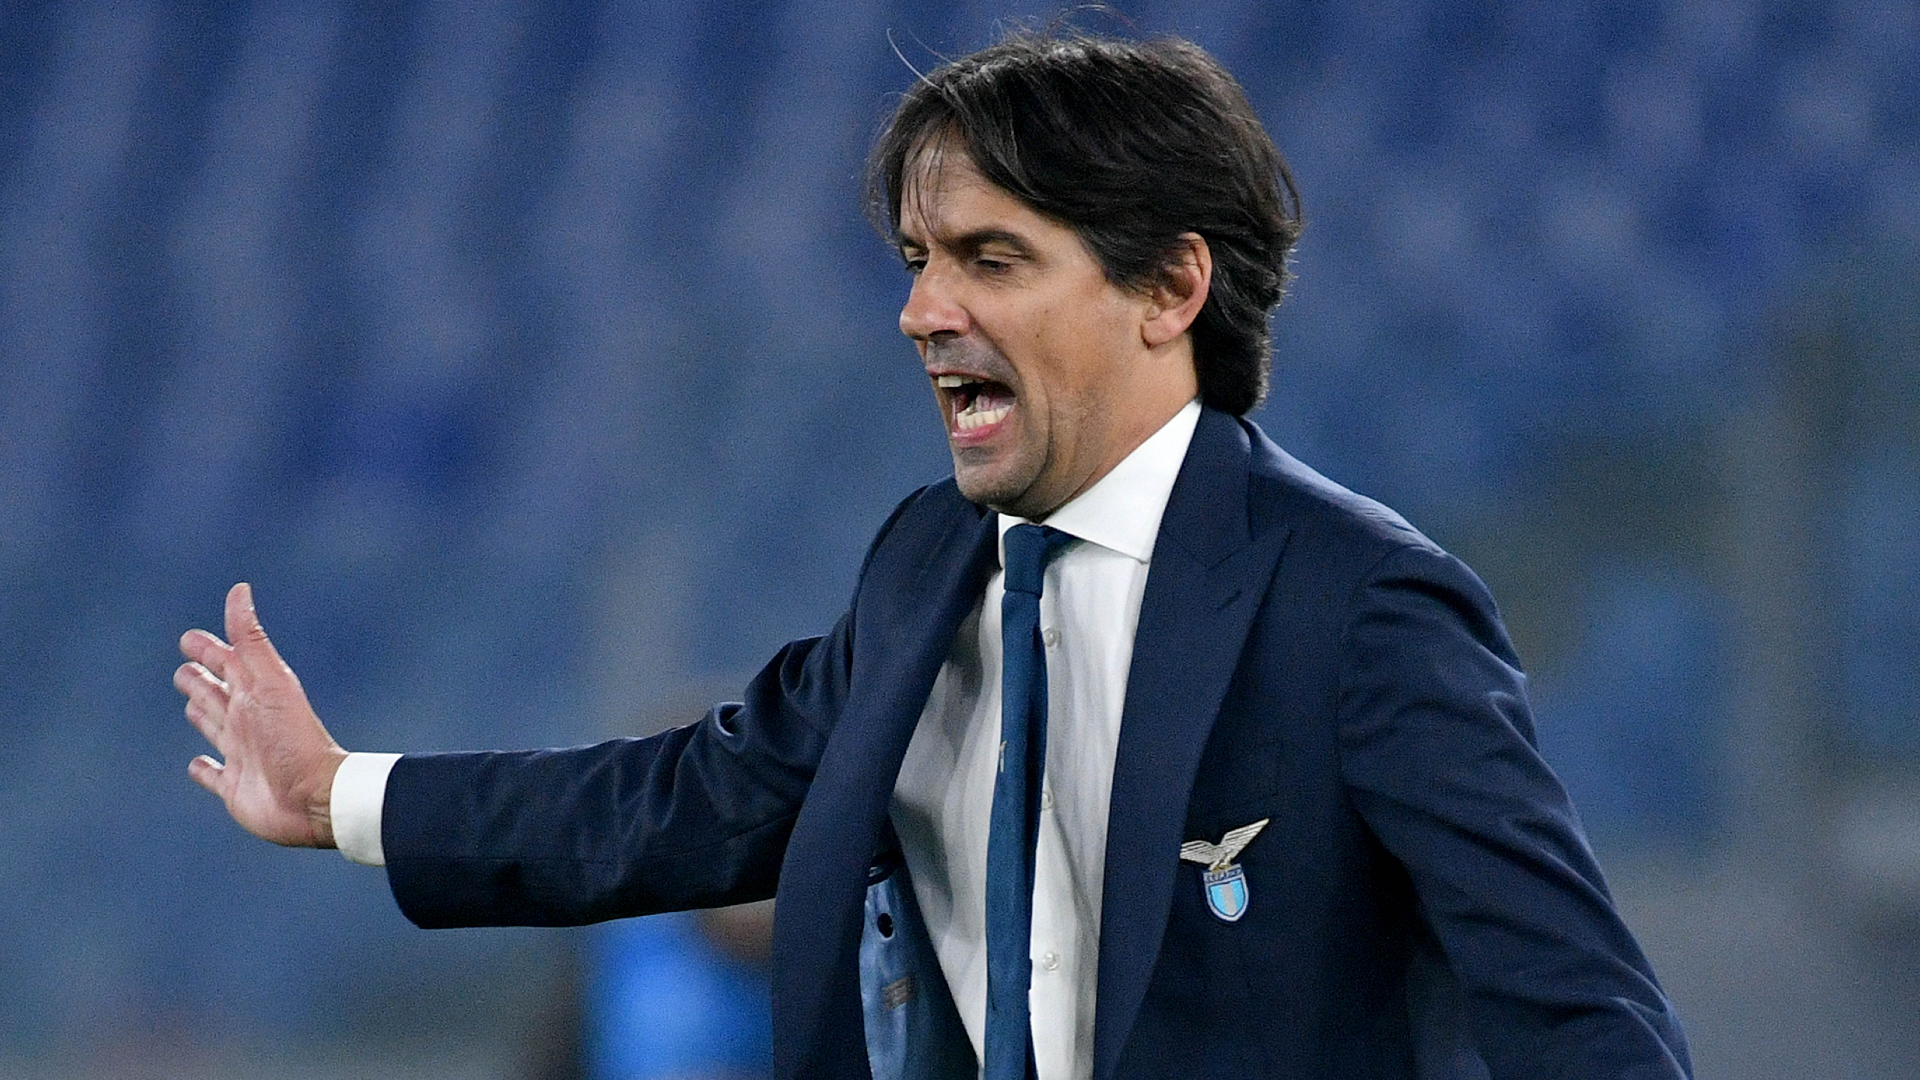 Lazio conceded four goals inside 47 minutes against Bayern Munich and boss Simone Inzaghi was frustrated with the error-strewn display.